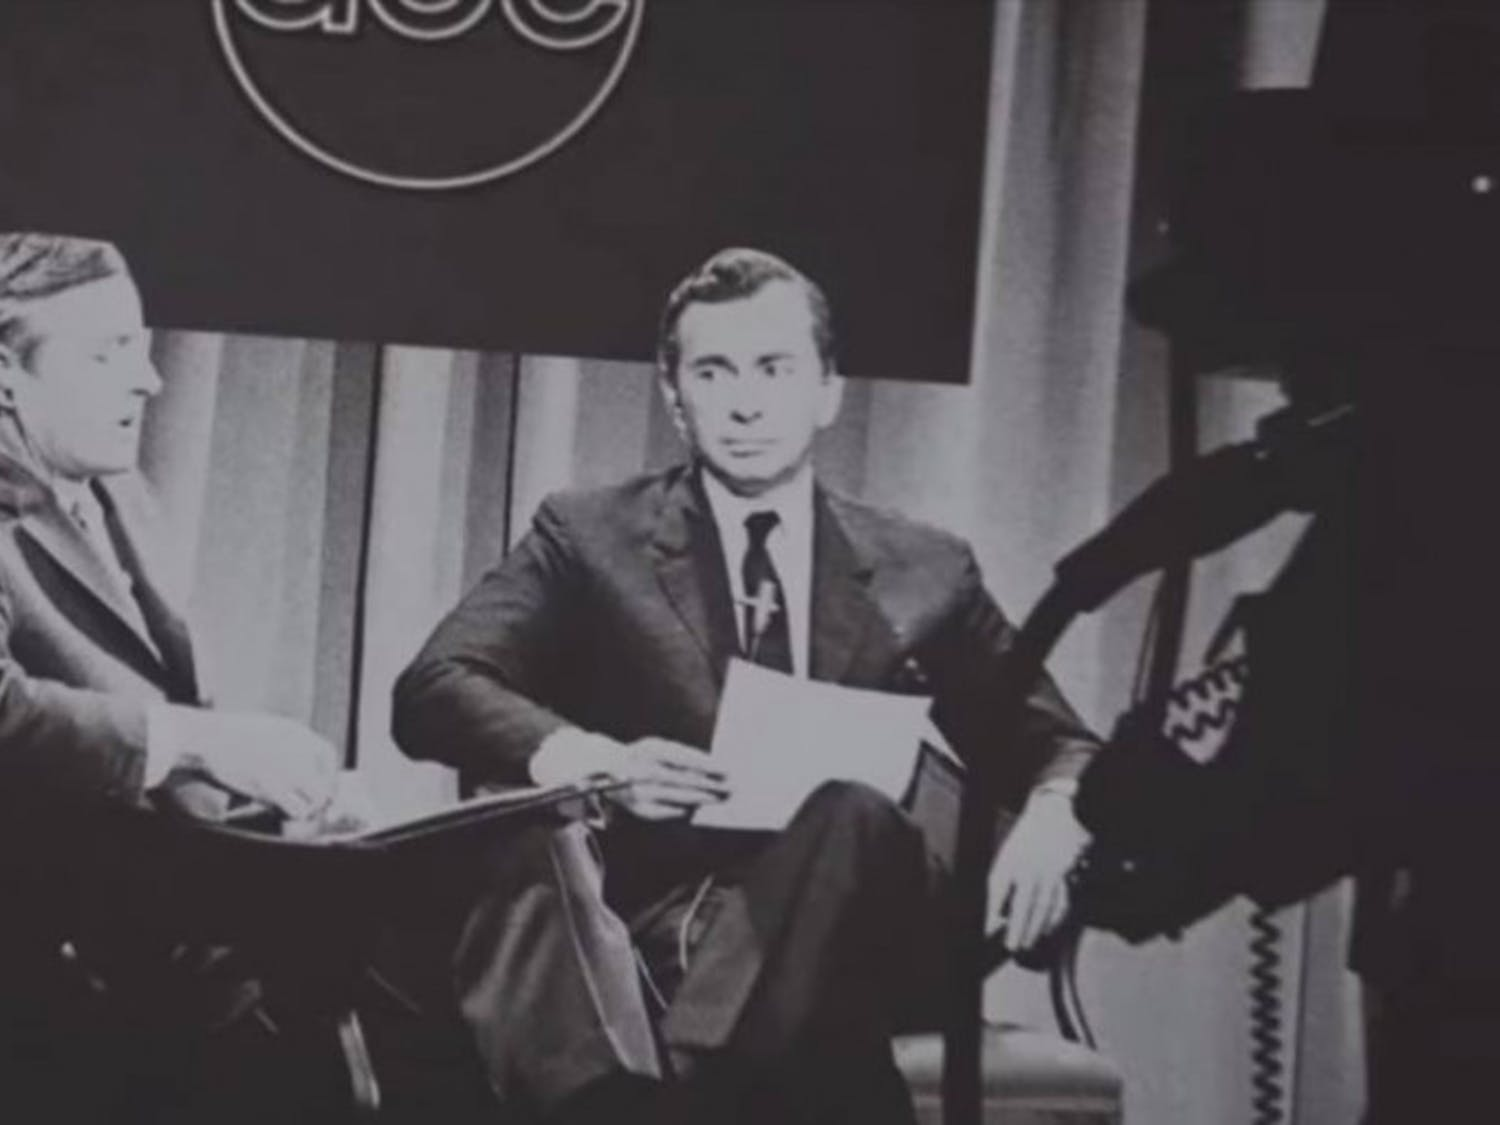 Best of Enemies, directed by Robert Gordon and Morgan Neville, debuted as the opening film at the AFI Silver Docs Film Festival. It offers an unprecedented, in-depth look at the clash of two of America's most dually contested public figures of the 1968 presidential election, William F. Buckley, Jr. and Gore Vidal.